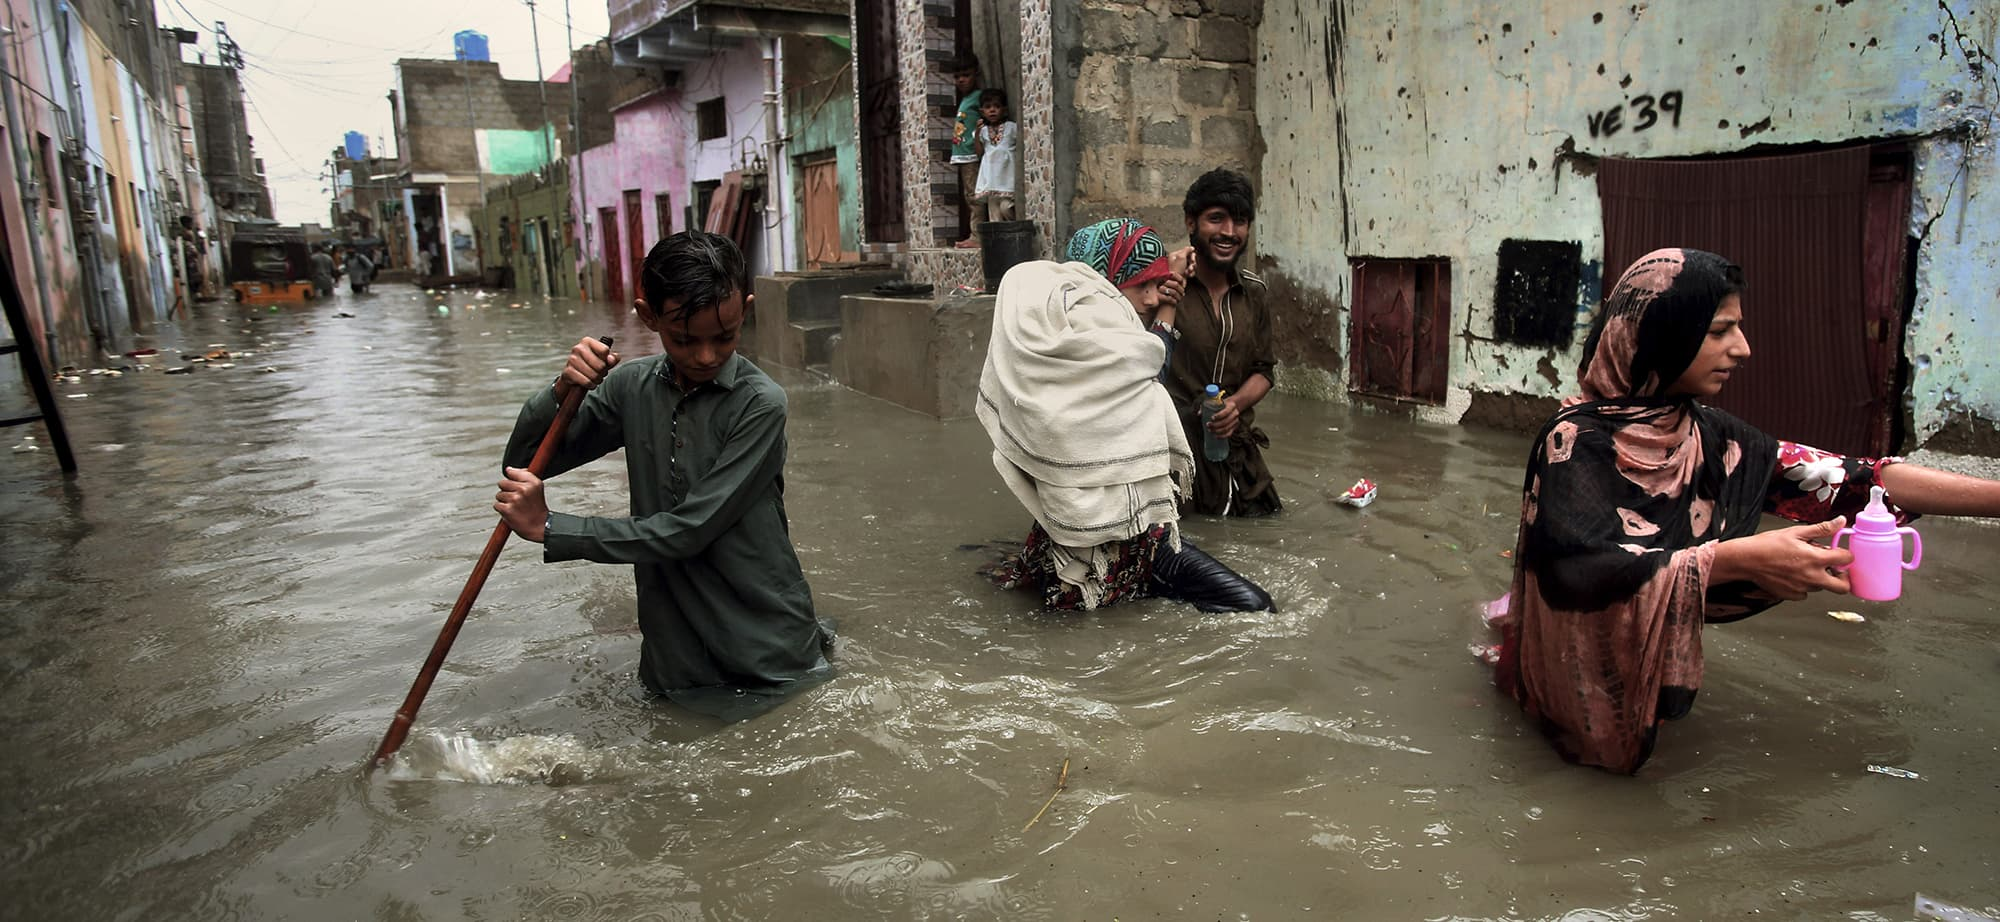 A family wades through a flooded street caused by heavy monsoon rains, in Karachi, Pakistan, Sunday, Aug. 11, 2019. Monsoon rains have inundated much of Pakistan, leaving large parts of the southern city of Karachi underwater and causing some deaths. (AP Photo/Fareed Khan) — Copyright 2019 The Associated Press. All rights reserved.